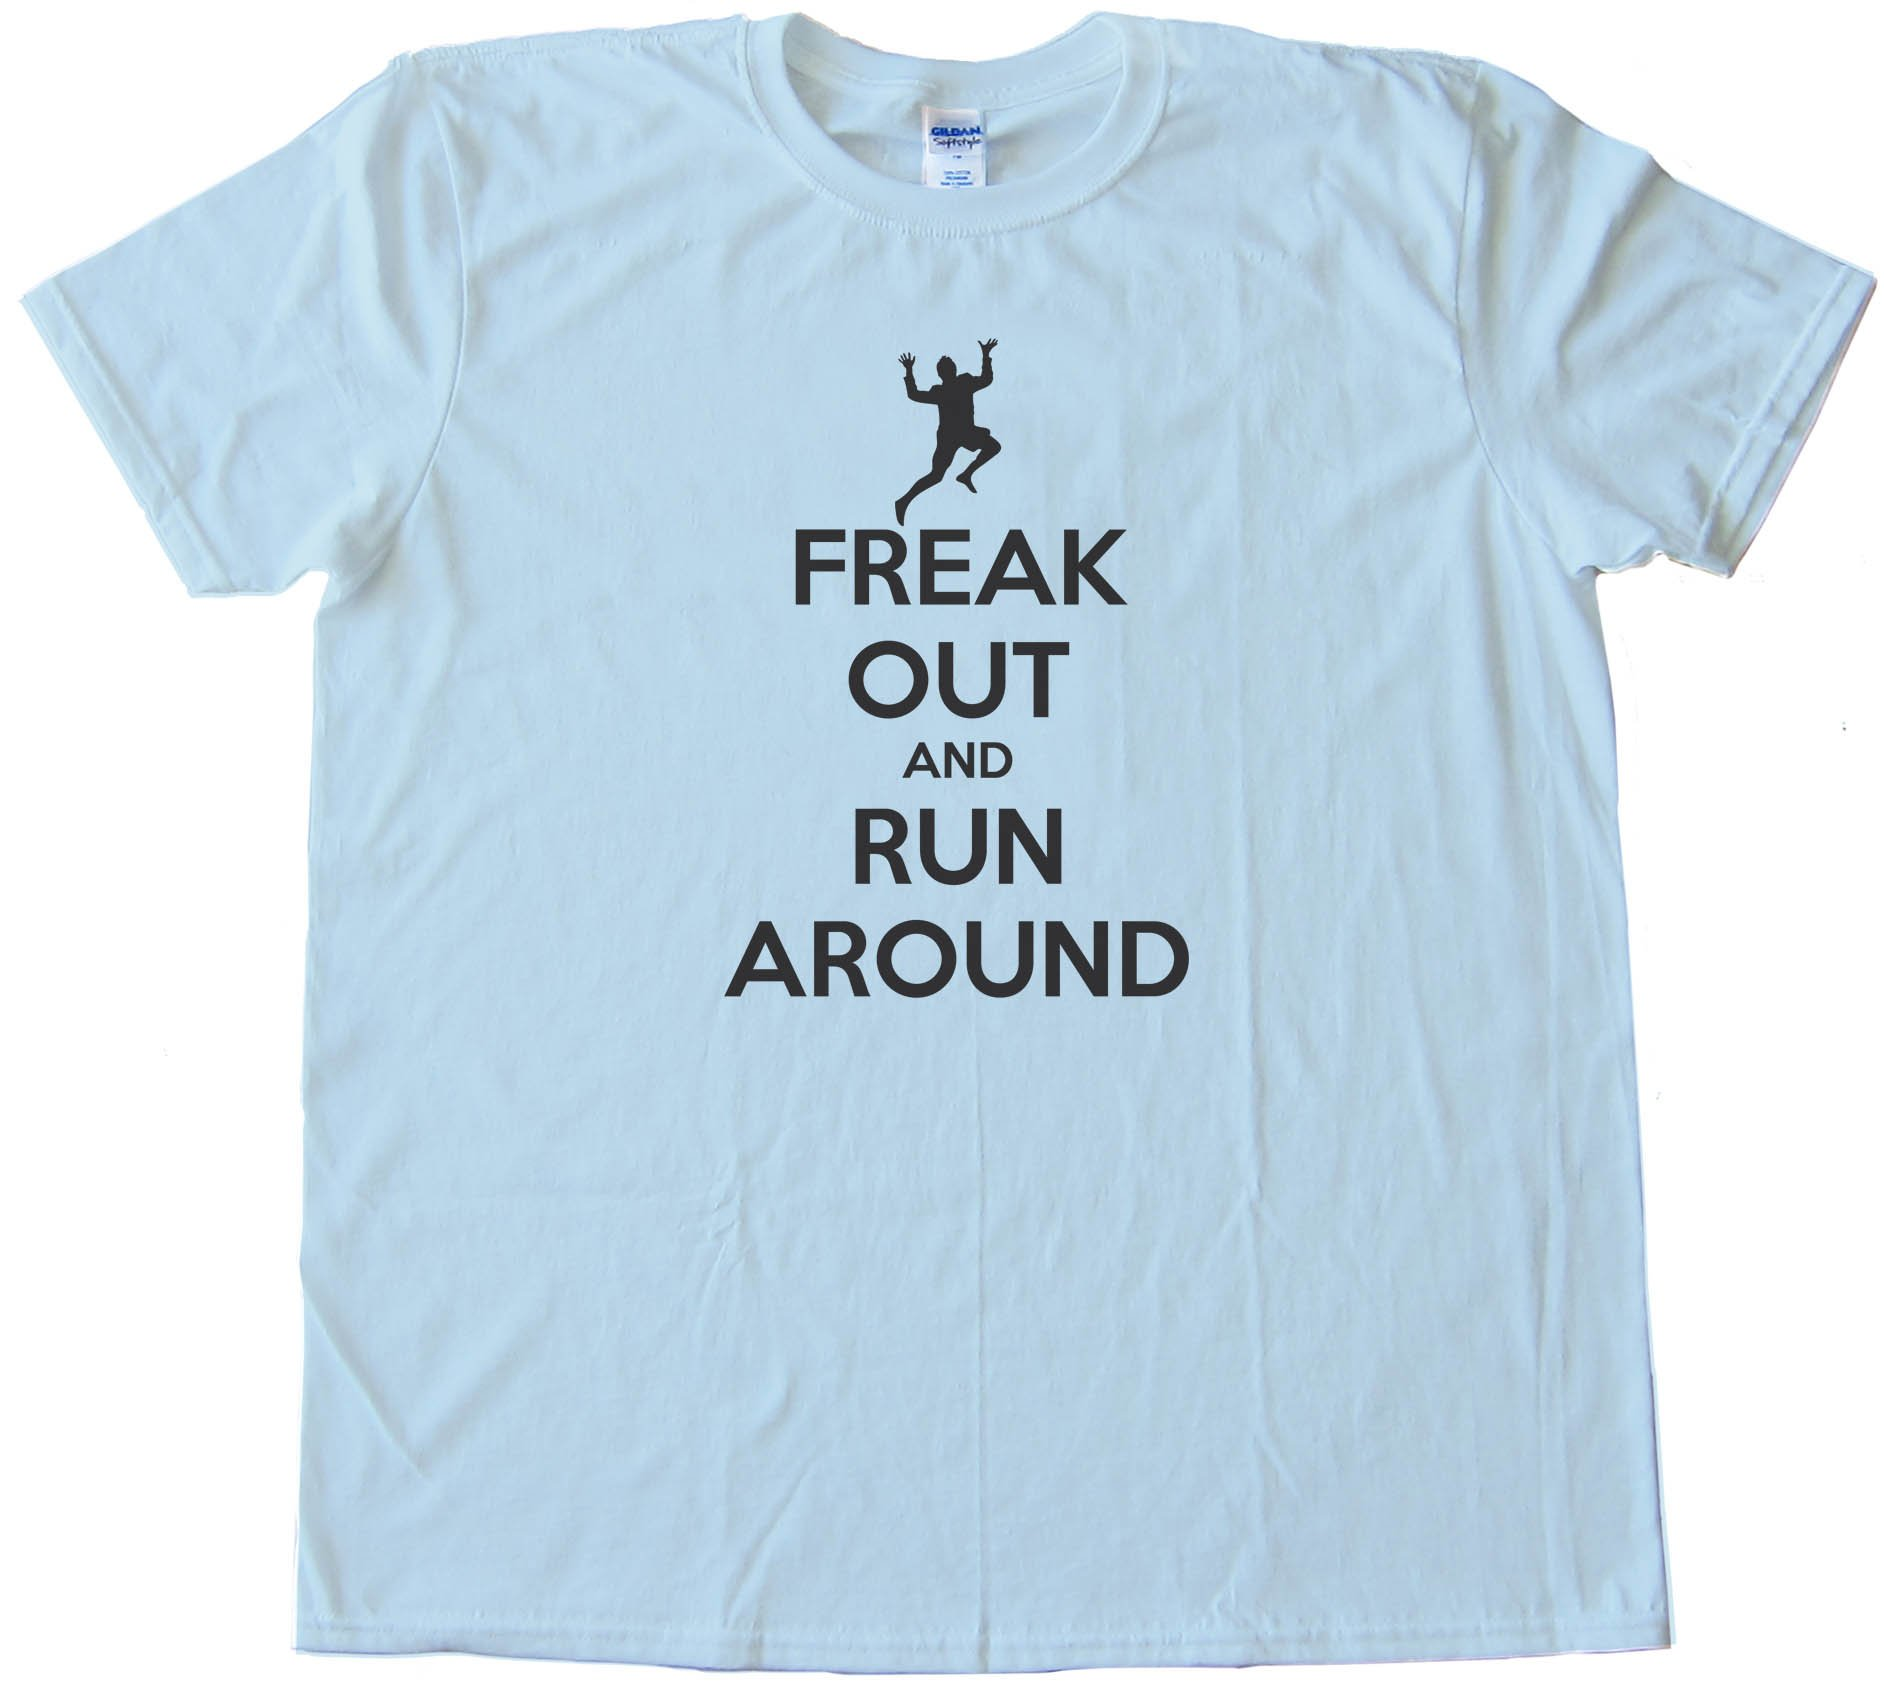 Freak Out And Run Around Keep Calm And Carry On Spoof - Tee Shirt